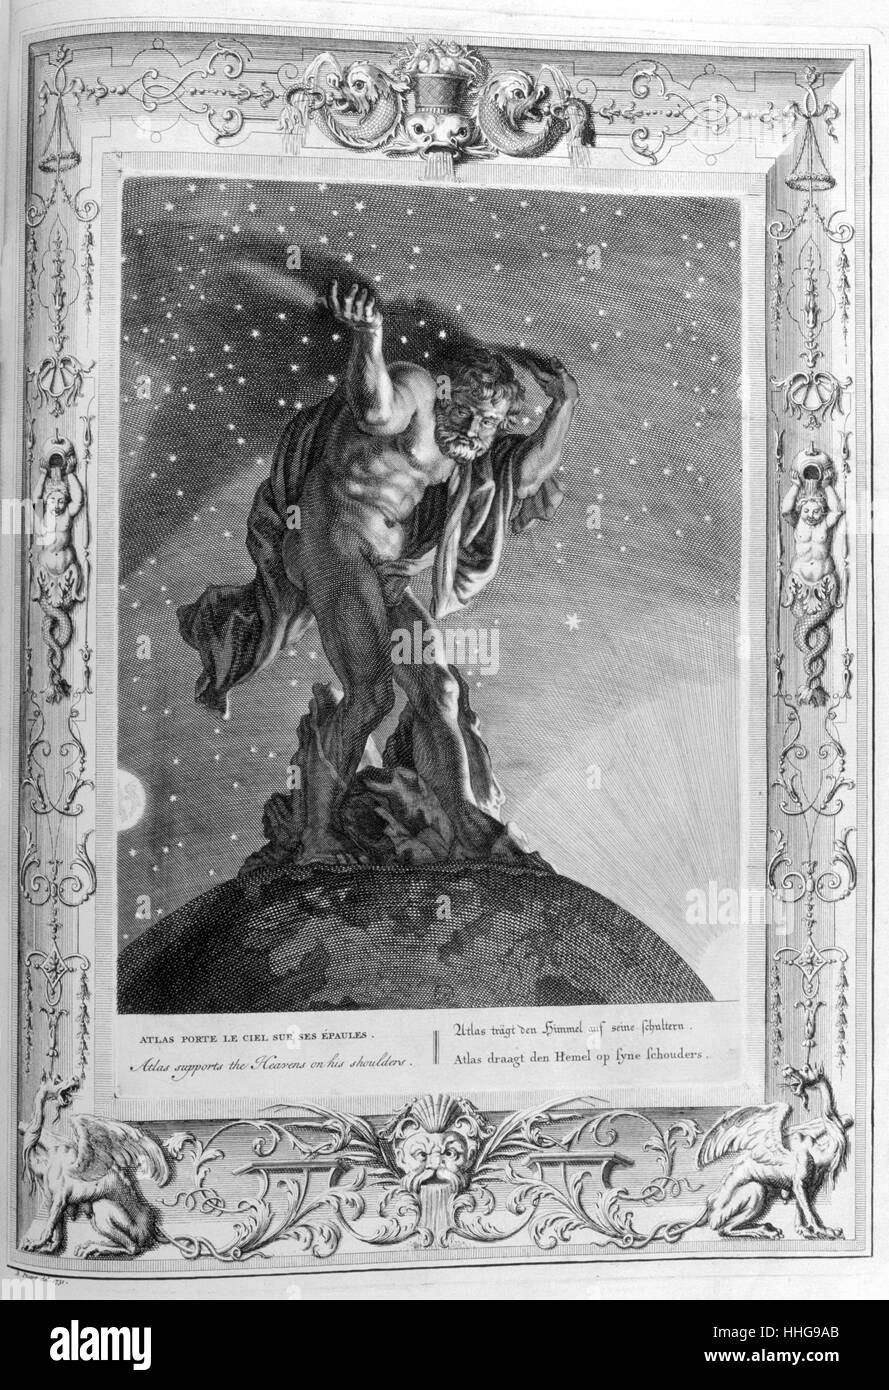 Atlas supports the heavens upon his shoulders Engraved illustration from 'The Temple of the Muses', 1733. - Stock Image